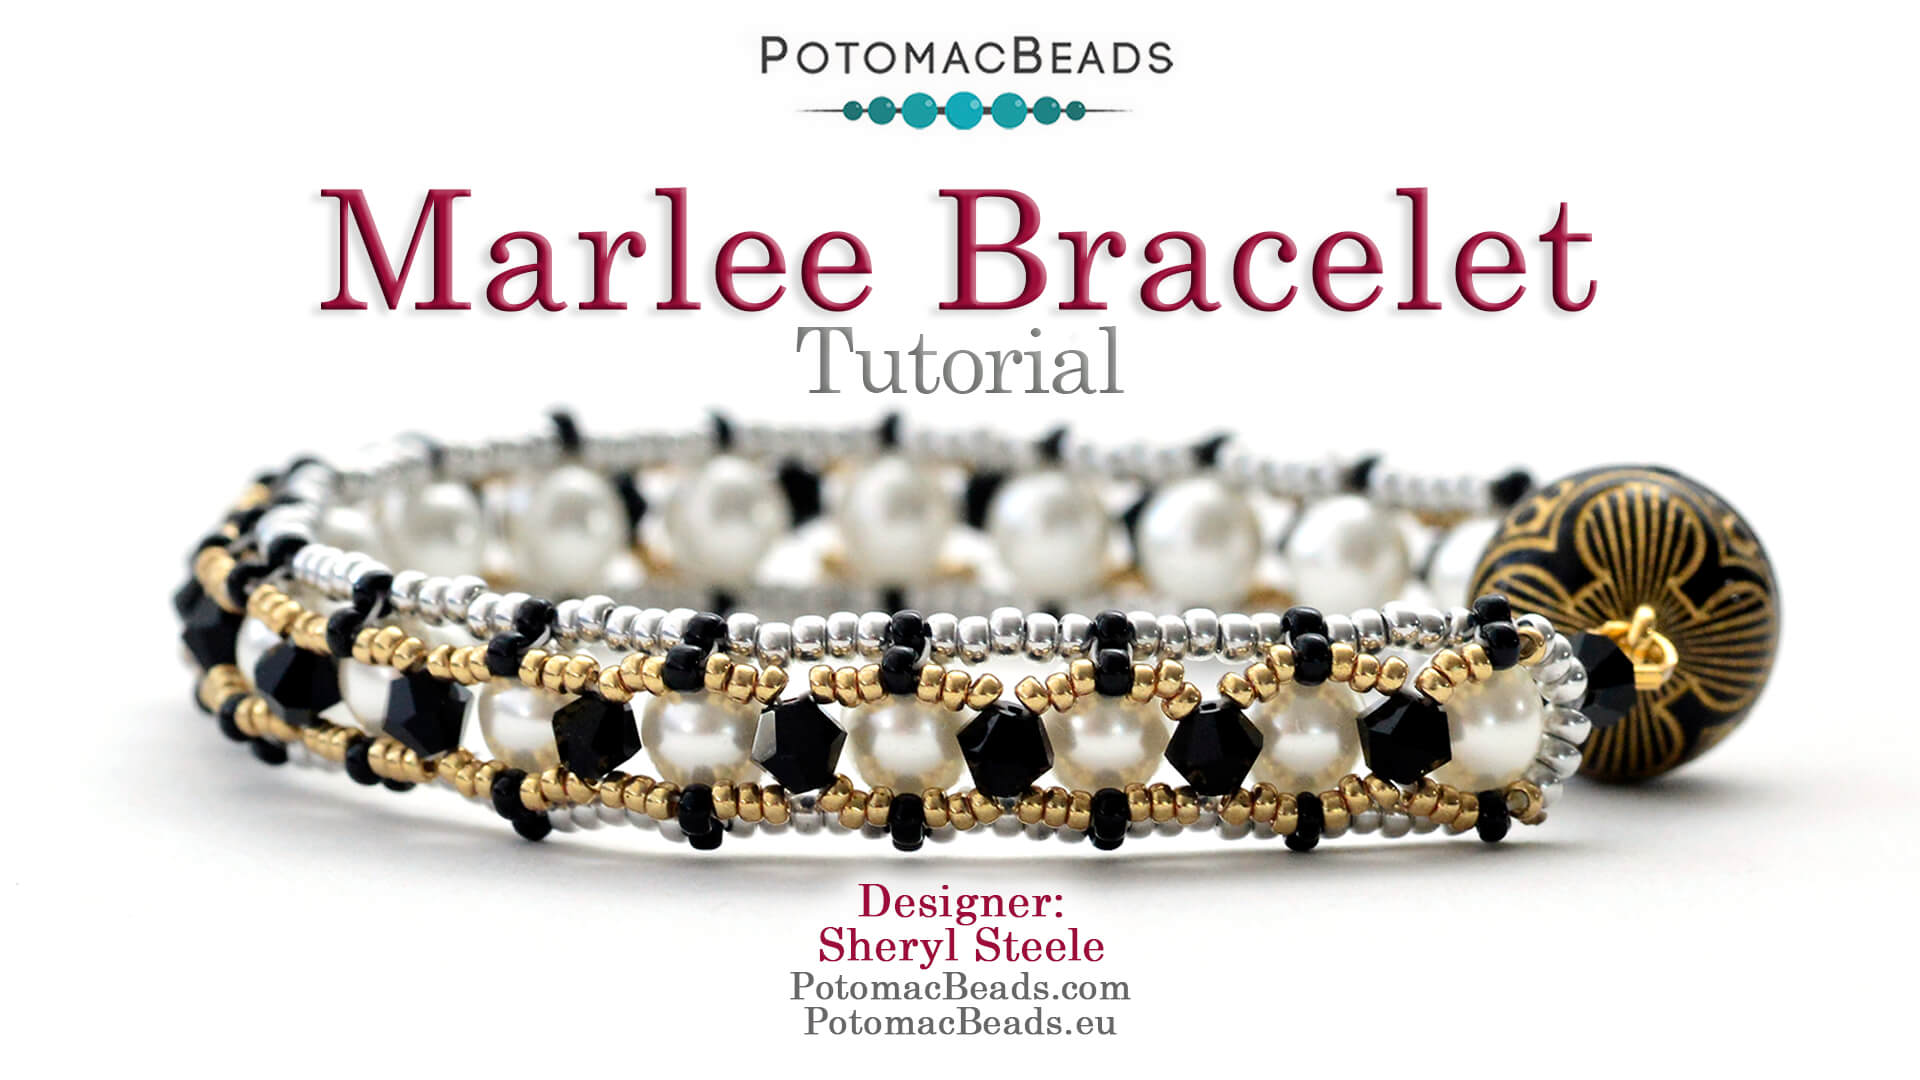 How to Bead Jewelry / Videos Sorted by Beads / Pearl Videos (Czech, Freshwater, Potomac Pearls) / Marlee Bracelet Tutorial